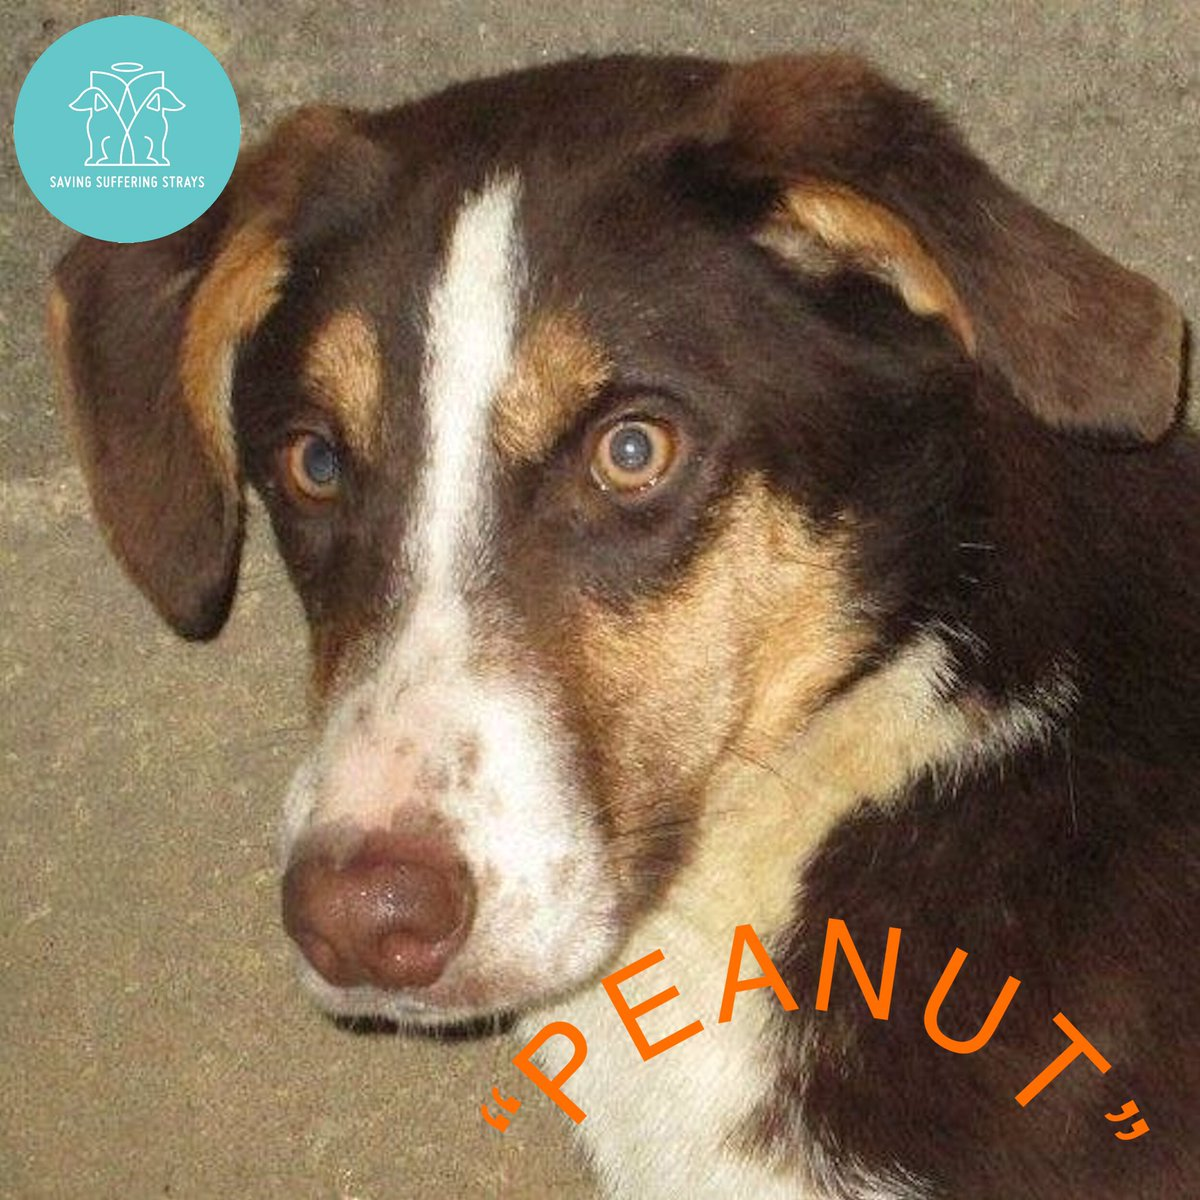 Could you be the family for PEANUT?   If so then please email adoptions@savingsufferingstrays.com   Because Every Dog Deserves A Home   #adopt #adoptadog #adoptastray #adoptdontshop #rescuenotretail #foreverhome #giveadogahomepic.twitter.com/FH9F5N692i